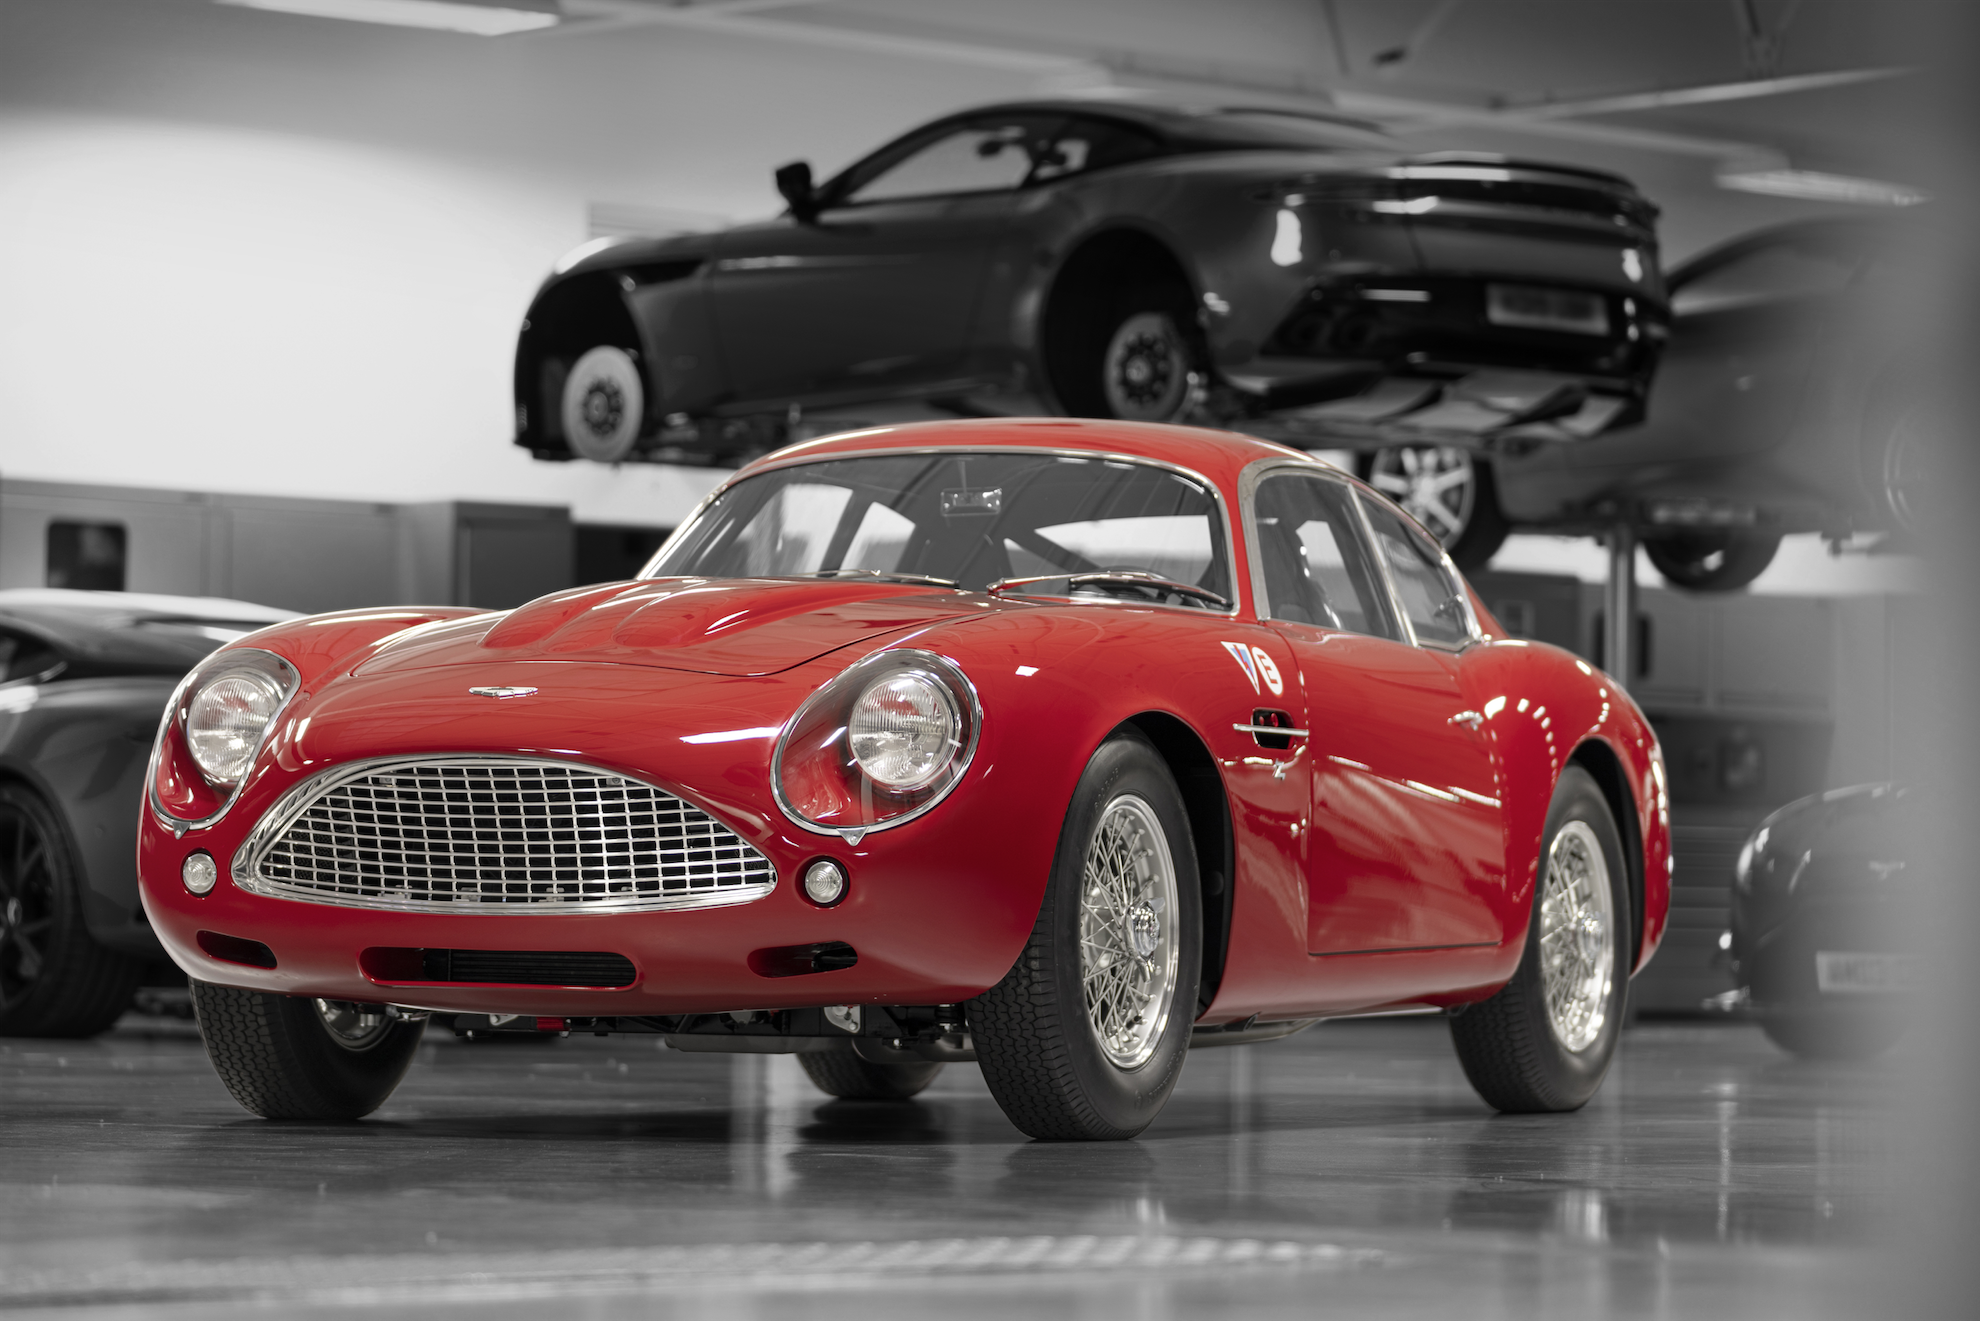 This Db4 Gt Zagato Continuation Is The Most Expensive New Aston Martin Ever Built